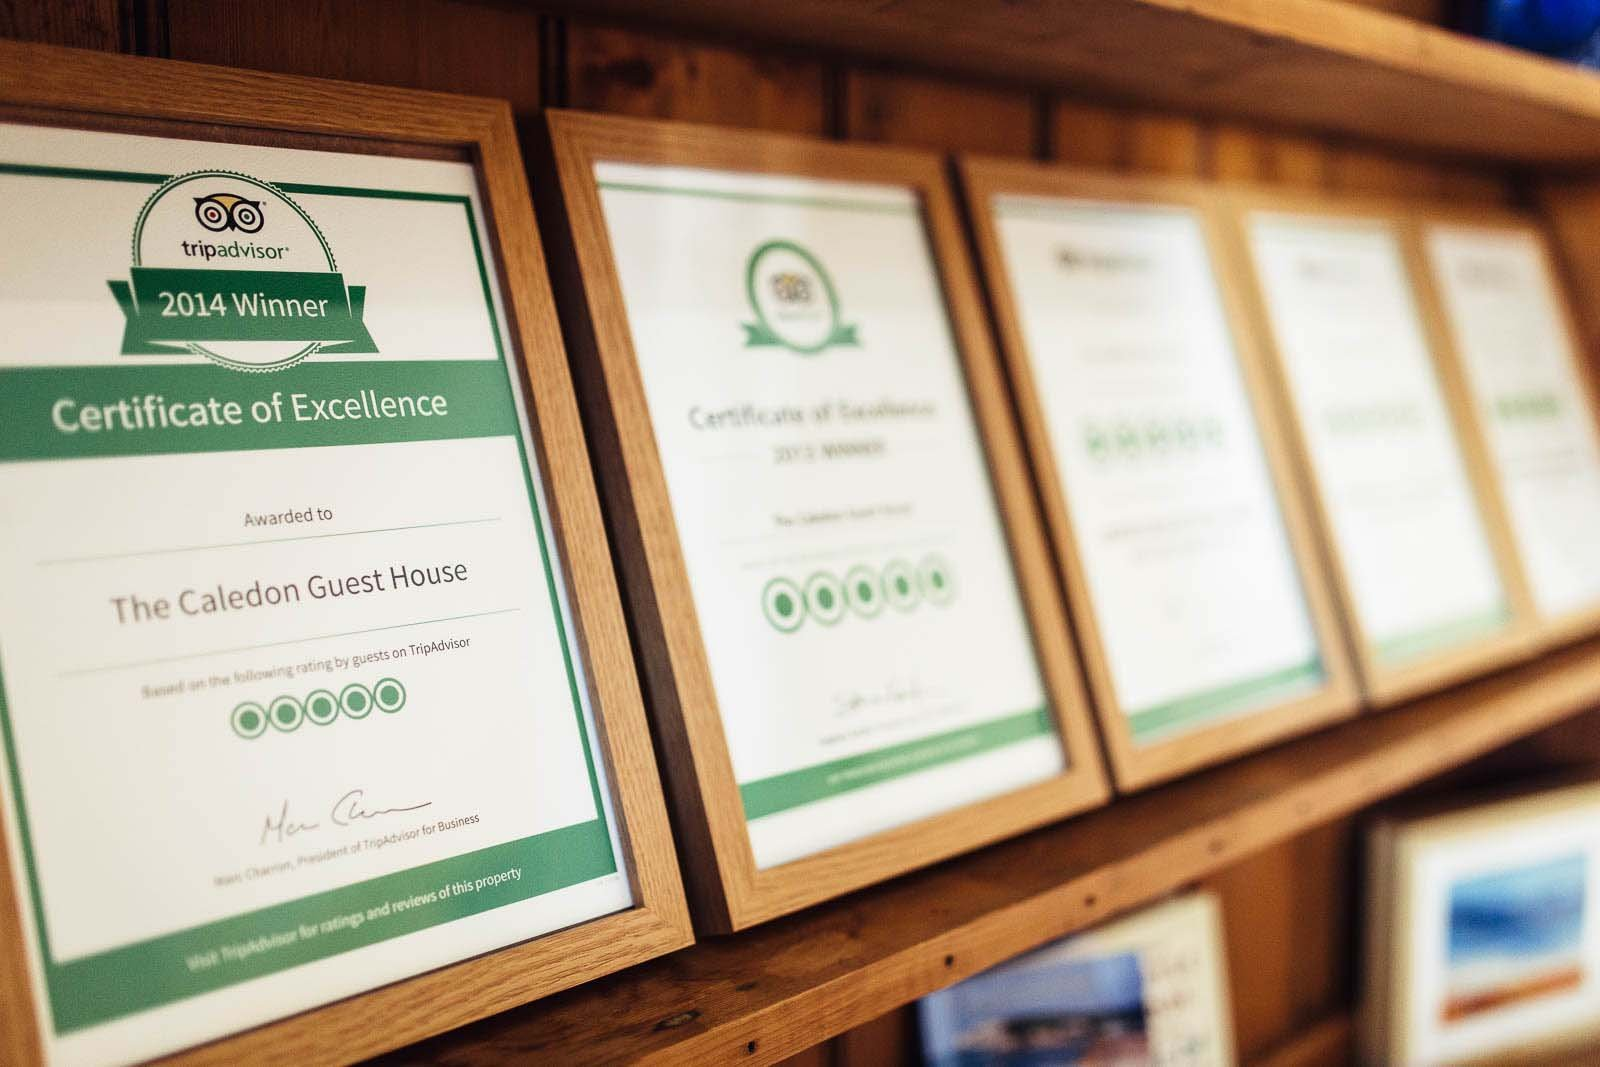 tripadvisor certificates of excellence at The Caledon Guest House, Bed and Breakfast, Cowes, Isle of Wight